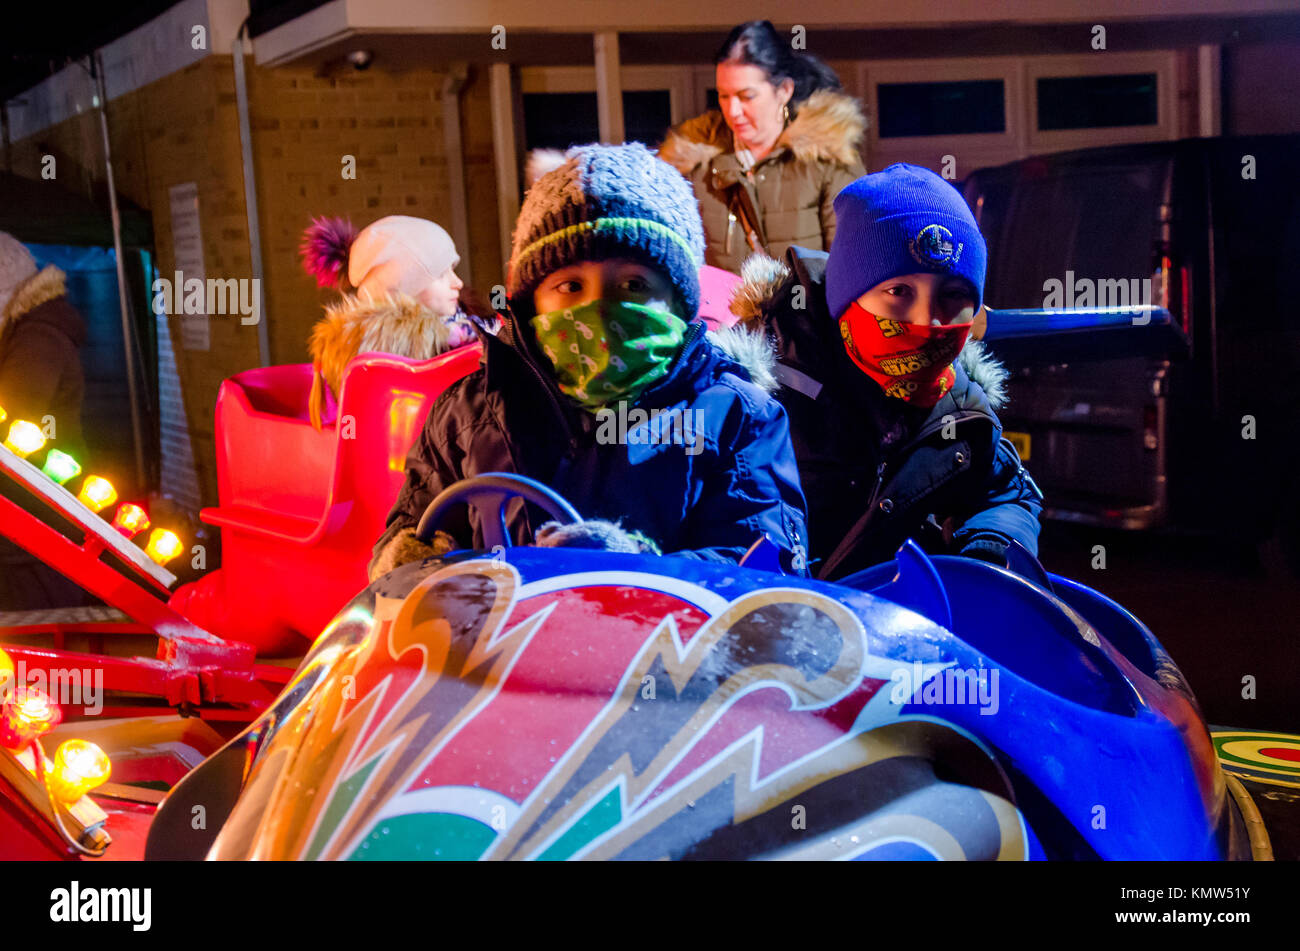 Two young brothers sit in a pod on a children's vortex style, spinning ride. - Stock Image